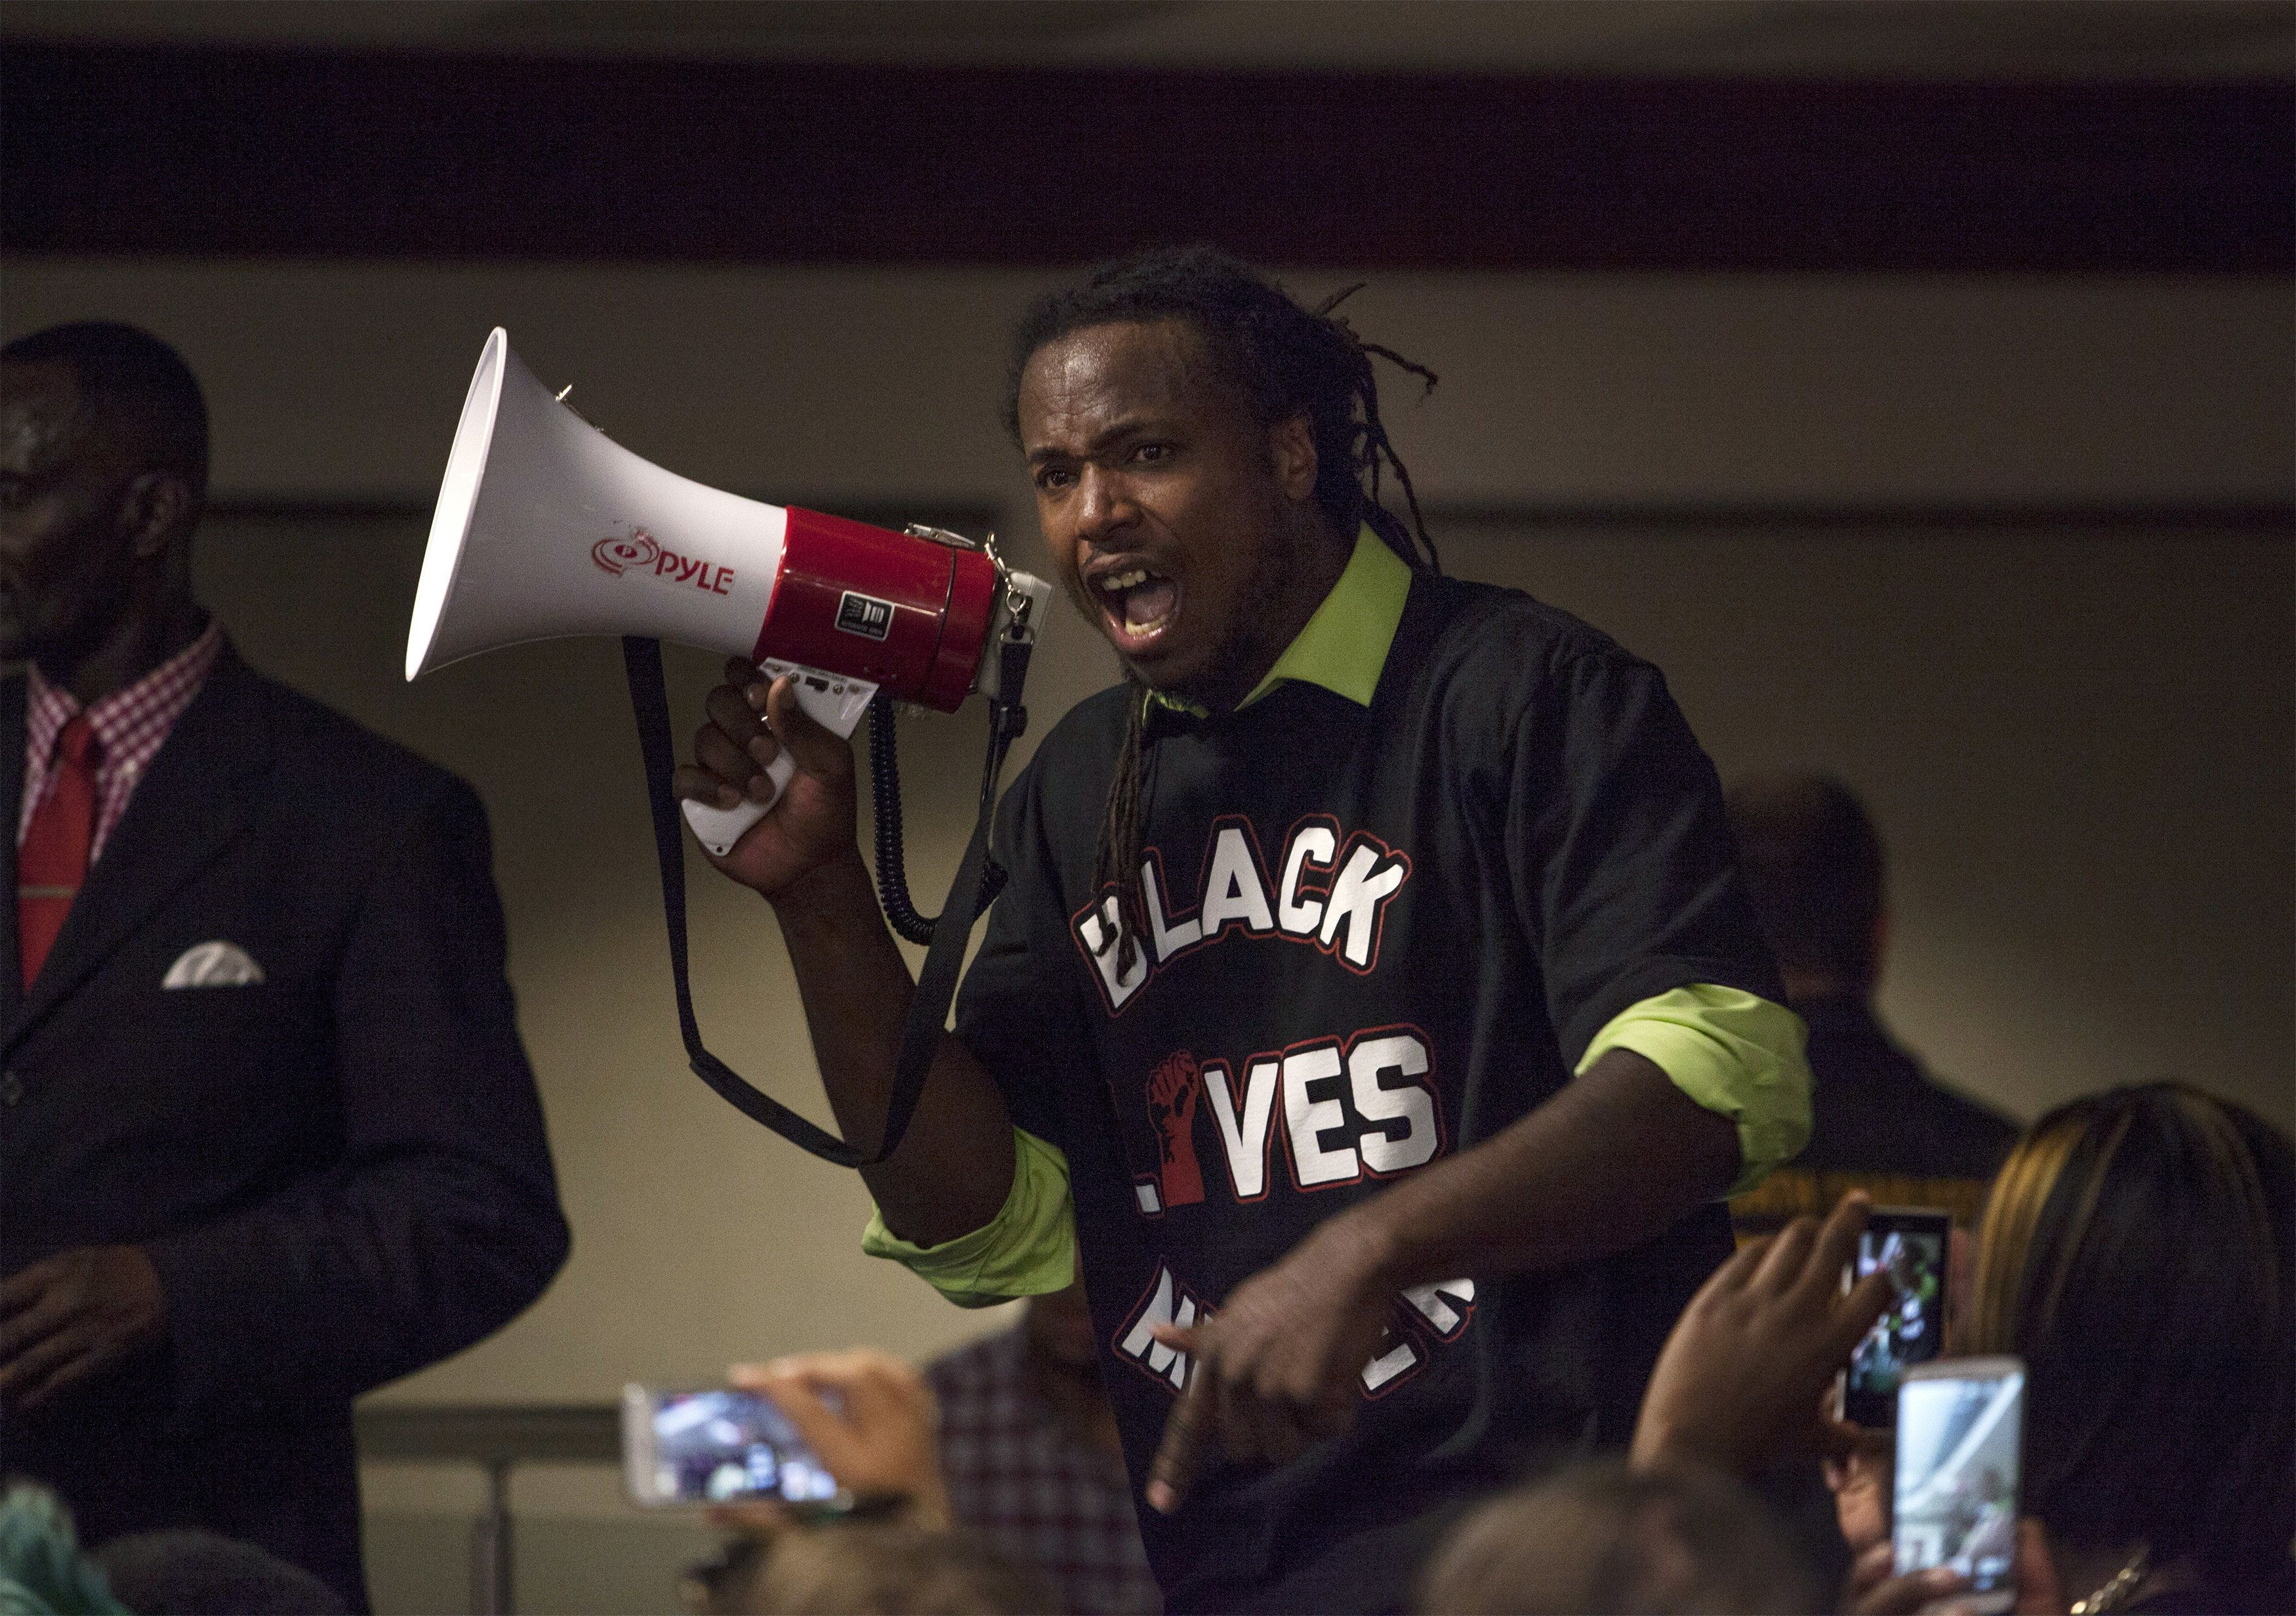 Muhiydin Moye D'Baha of the Black Lives Matter movement, uses a bull horn to make a point during a news conference with North Charleston Police and Government officials in North Charleston, South Carolina April 8, 2015. Demonstrators rallied on Wednesday against what they described as a culture of police brutality in South Carolina in the case of white officer Michael Slager, who was caught on video killing 50-year-old Walter Scott, a black man, by shooting him in the back as Scott ran away after a traffic stop. Slager was charged on Tuesday with murder in the death of Scott.   REUTERS/Randall Hill